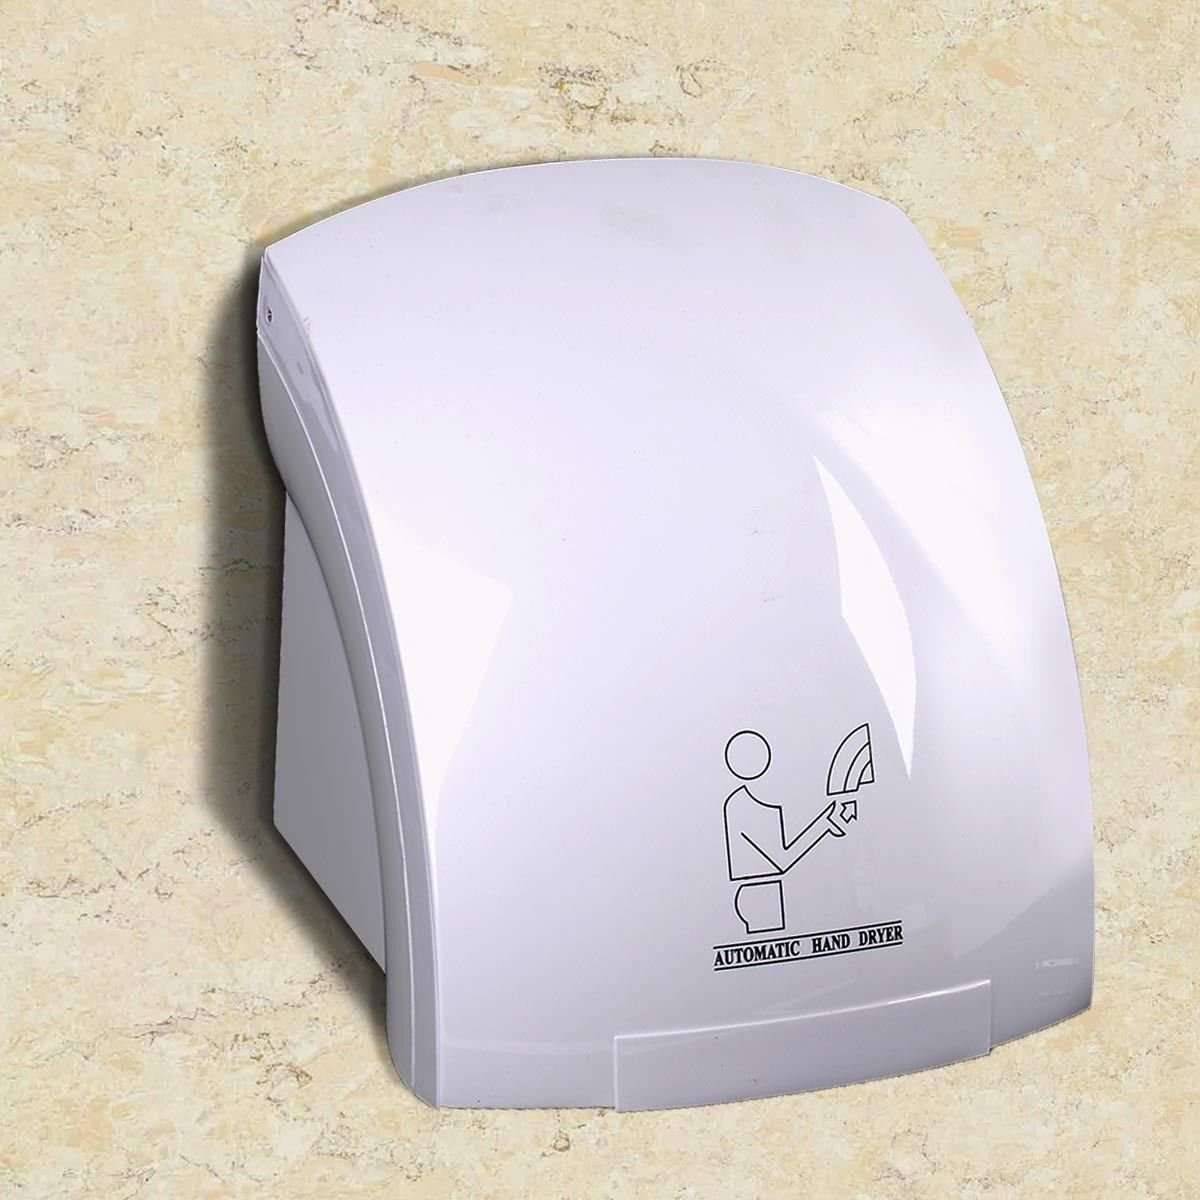 Household Hotel Automatic Infrared Sensor 1200 watt 110 volt Hand Dryer Bathroom Hands Drying Device Shockproof Strengthened Casing Easy Installation And Operatation Wall Outlet generic